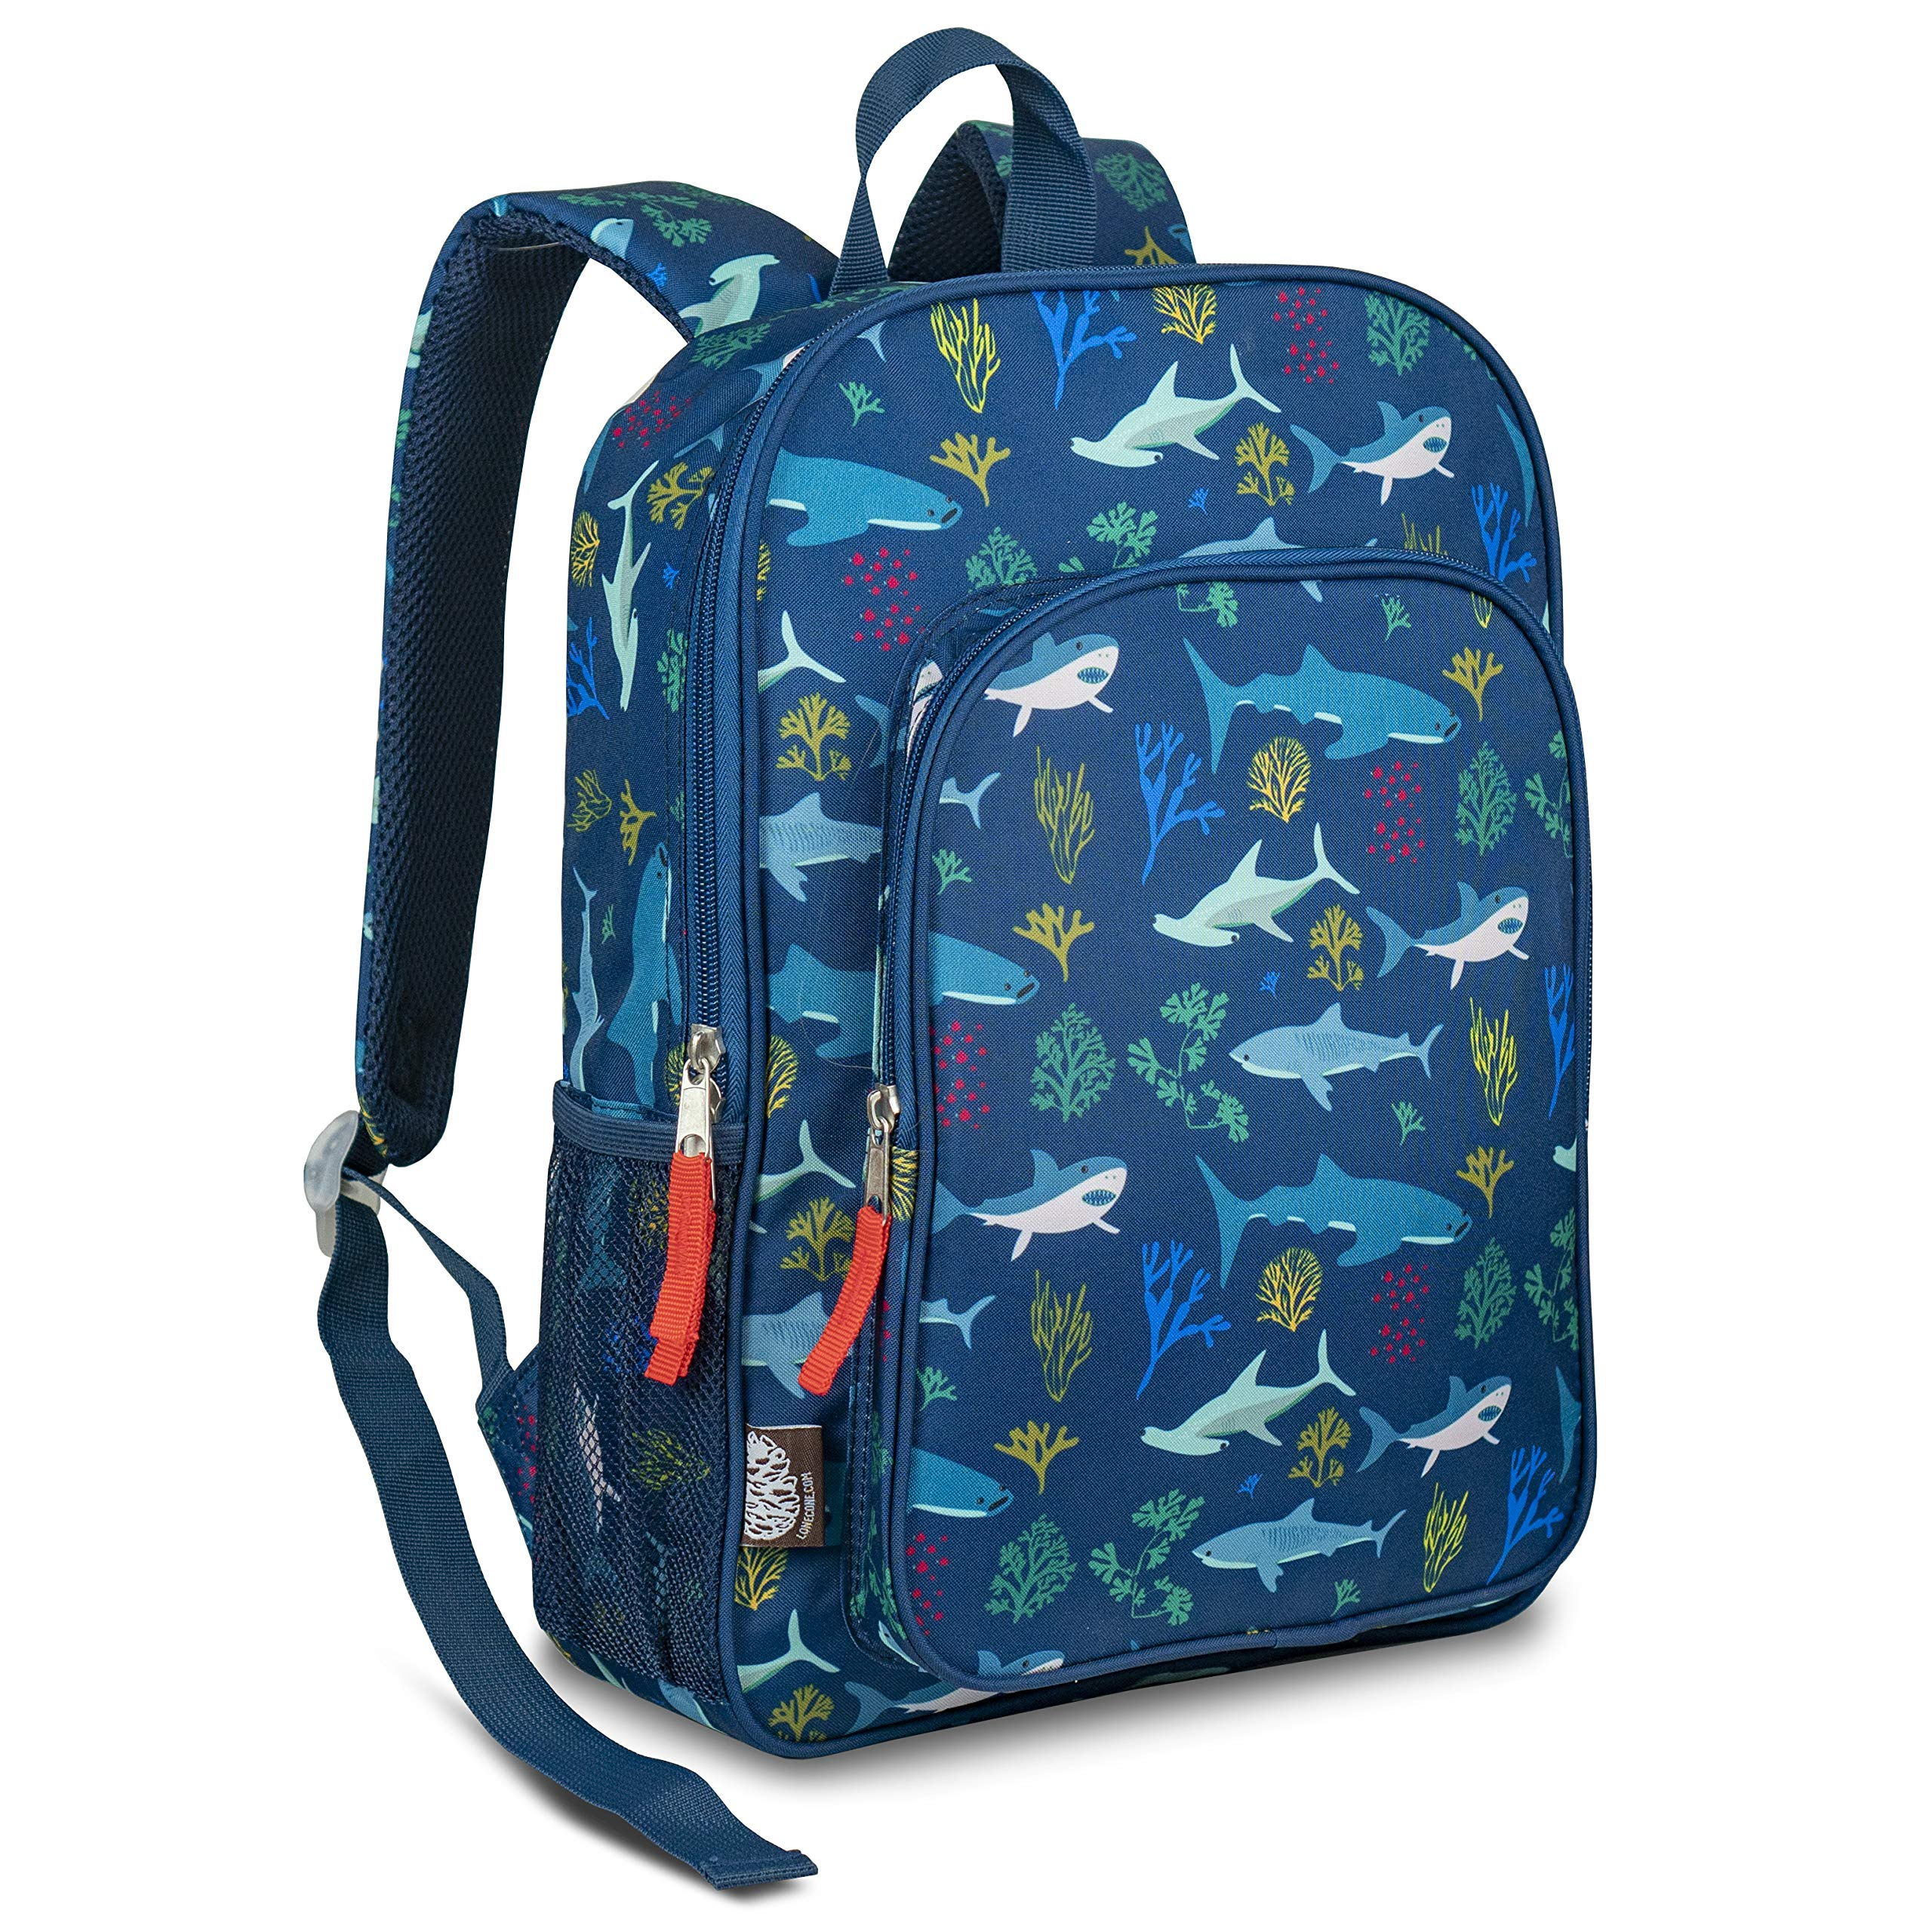 LONECONE Kids School Backpack for Boys and Girls - Sized for Kindergarten, Preschool - Shark School by LONECONE